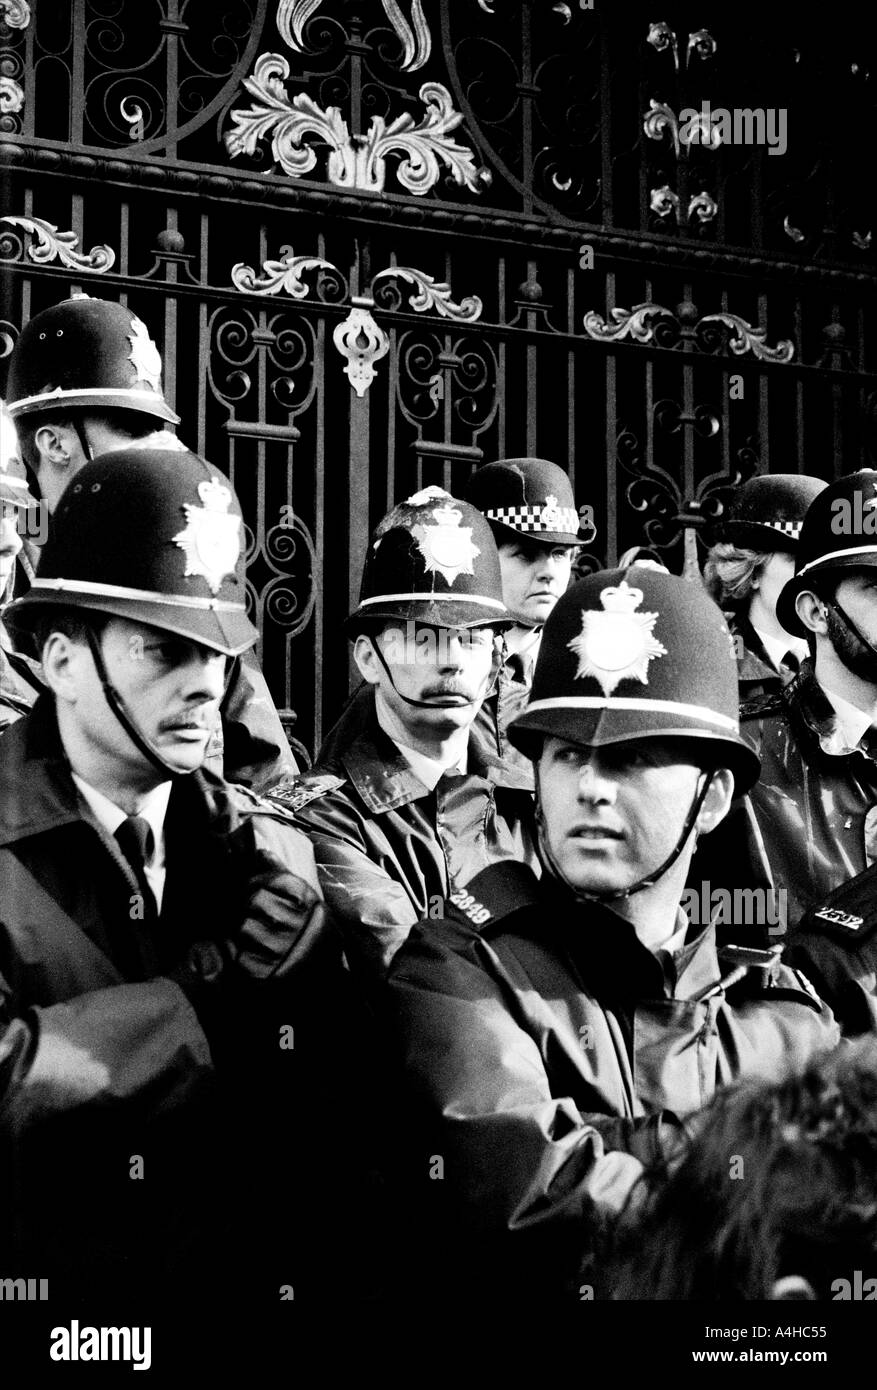 monochrome of a group of police officers protecting sheffield town hall during the poll tax riots 1990 their uniforms = stained - Stock Image